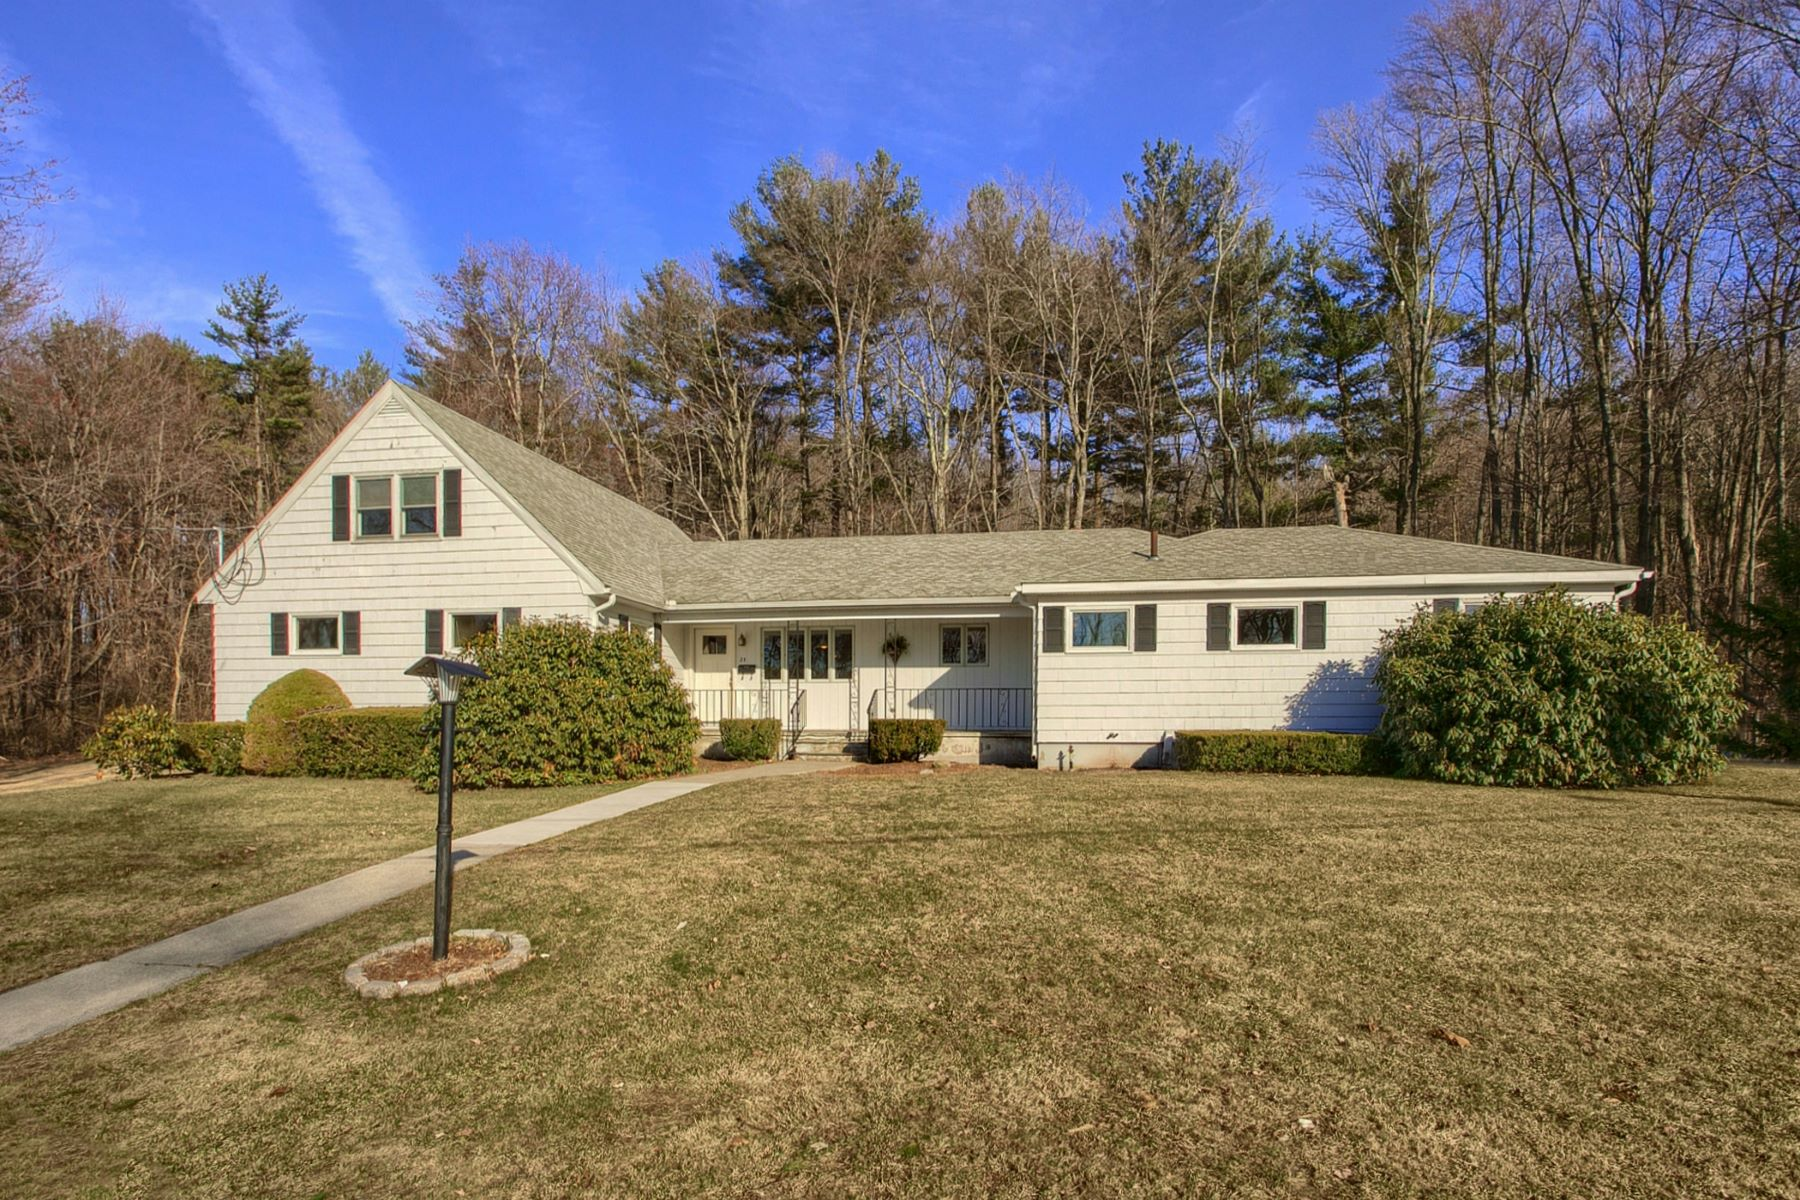 Single Family Home for Active at 25 Cloverleaf Rd, Leominster 25 Cloverleaf Rd Leominster, Massachusetts 01453 United States